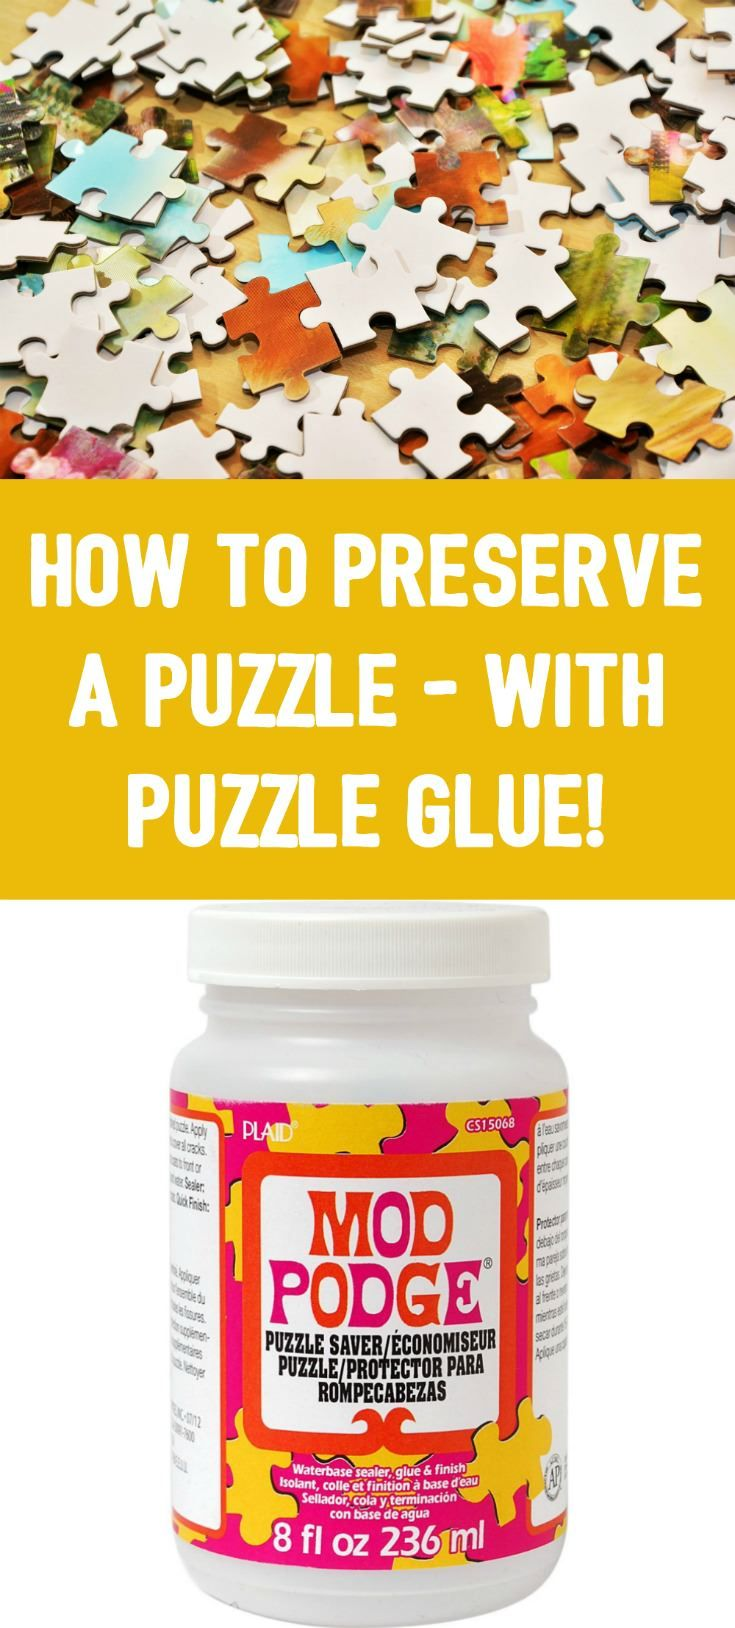 How to Use Puzzle Glue: Mod Podge Puzzle Saver | Mod Podge